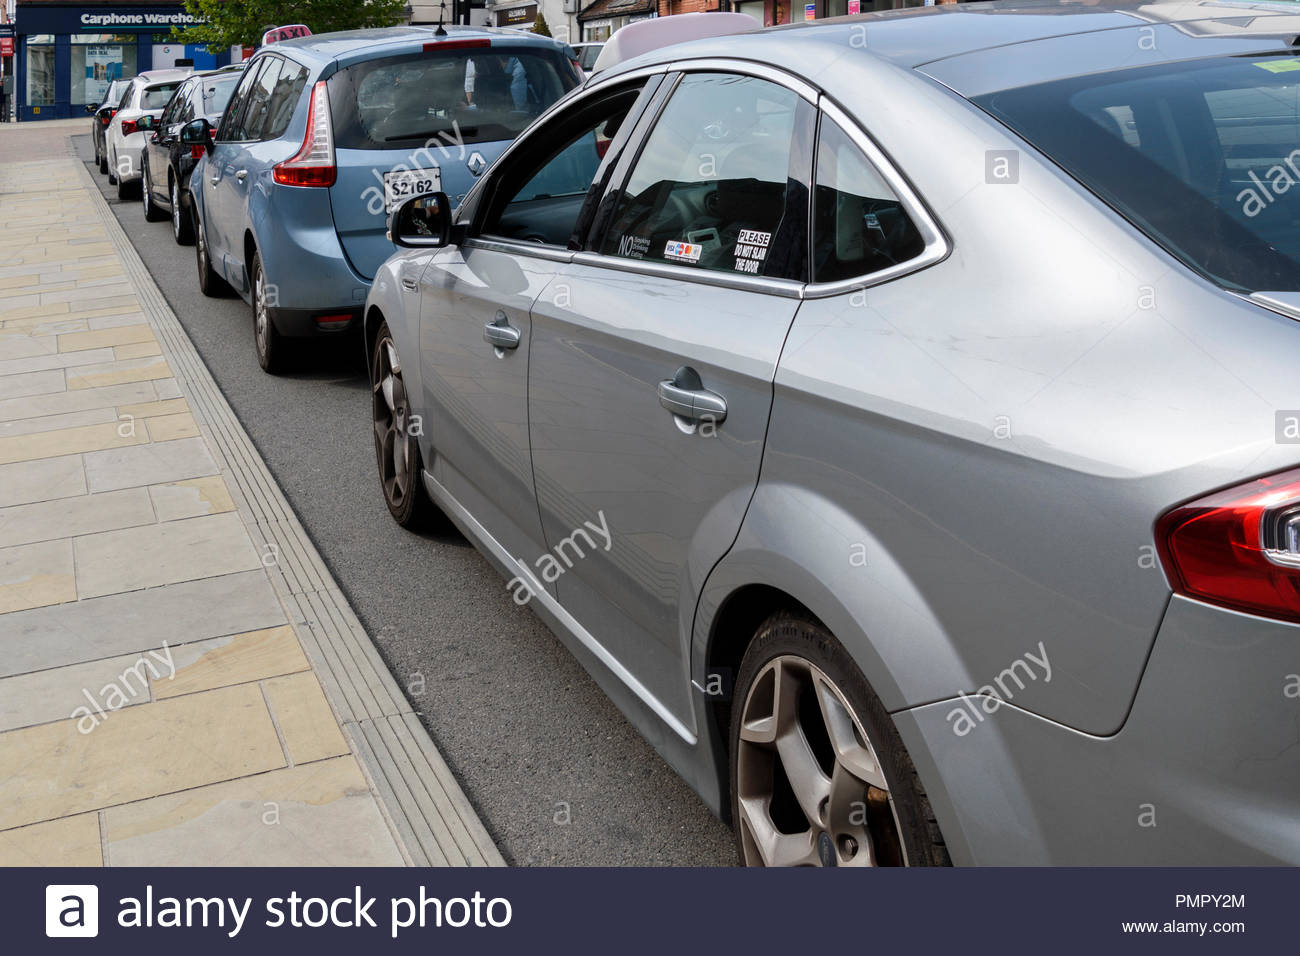 Close up of a row of parked mini cab taxis, Salisbury, Wiltshire, England, UK Stock Photo